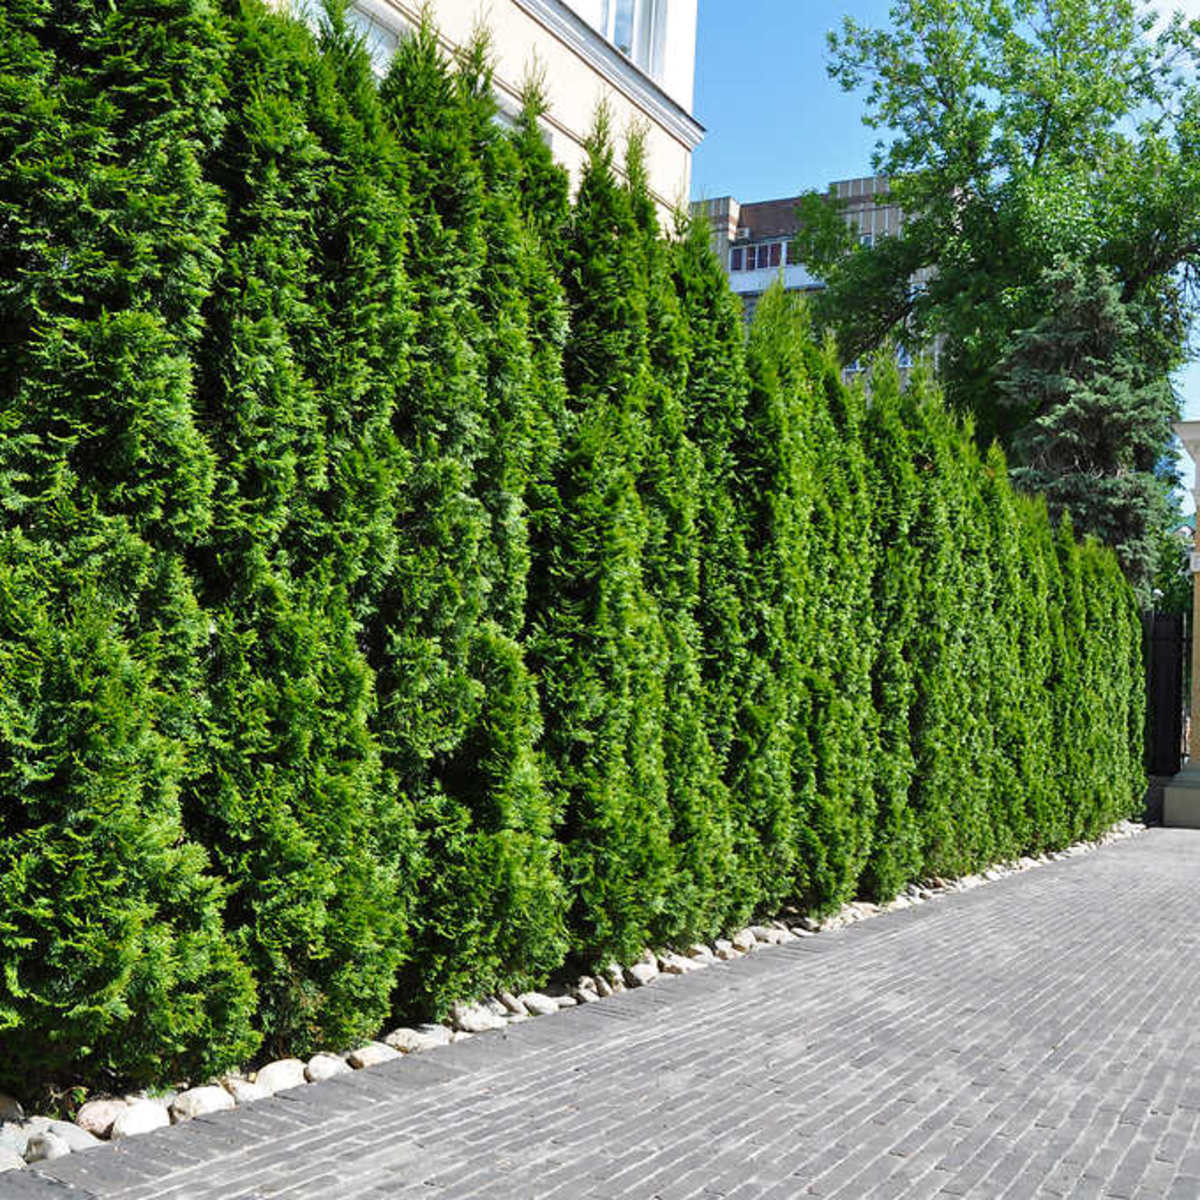 A straight and stately line of evergreen arborvitae bushes mark the property border and guard privacy..